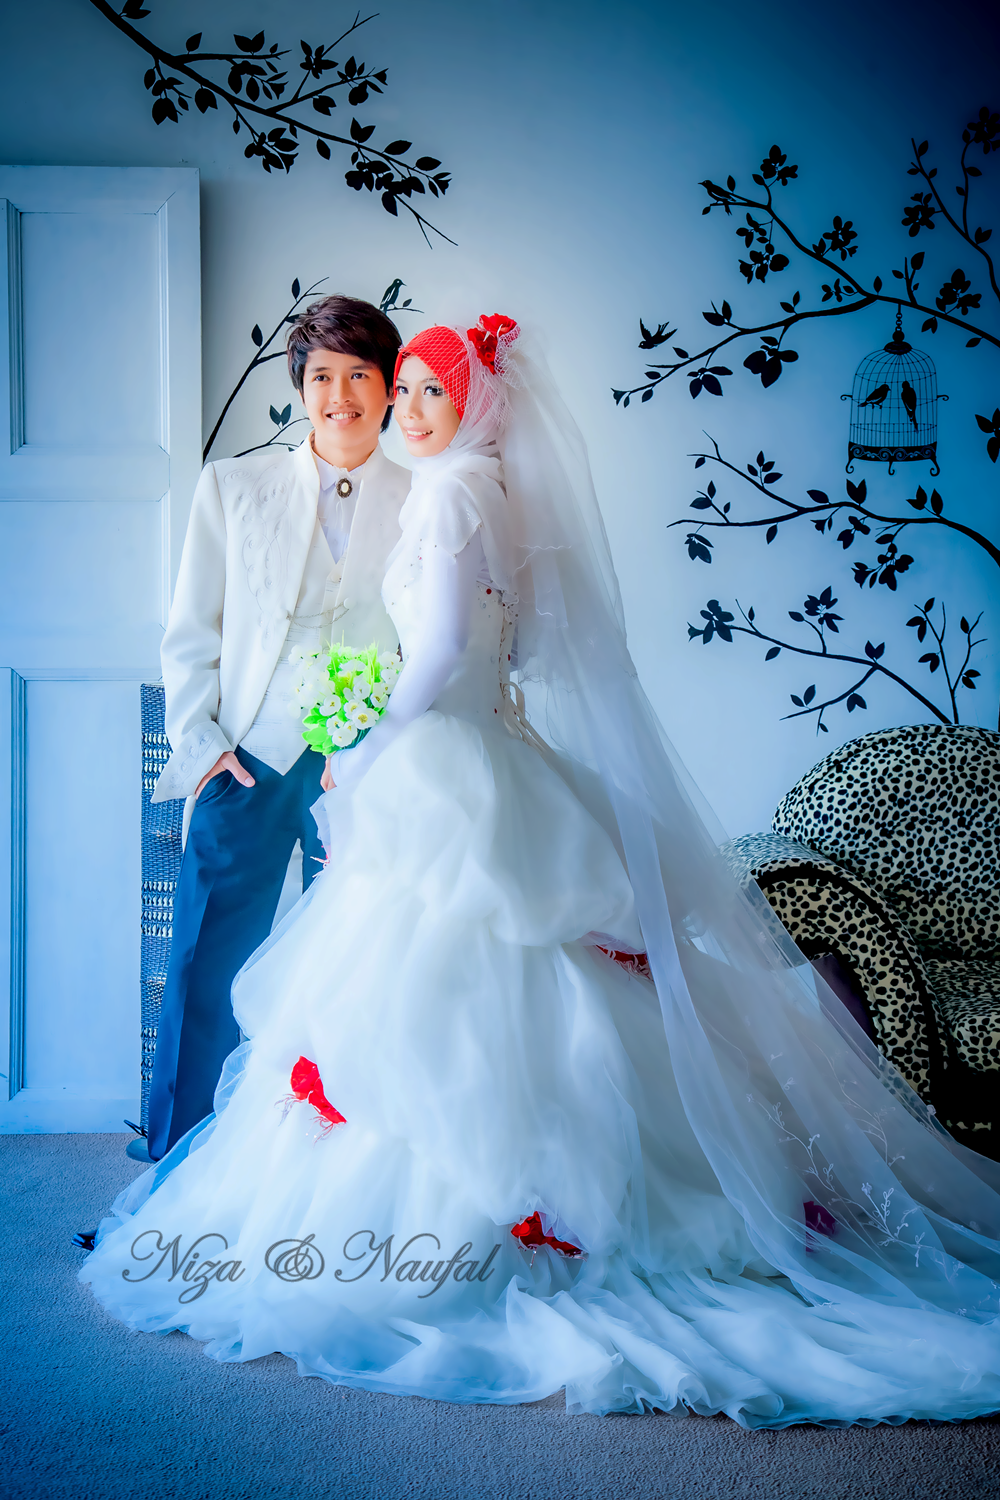 .Our Wedding Photoshoot.